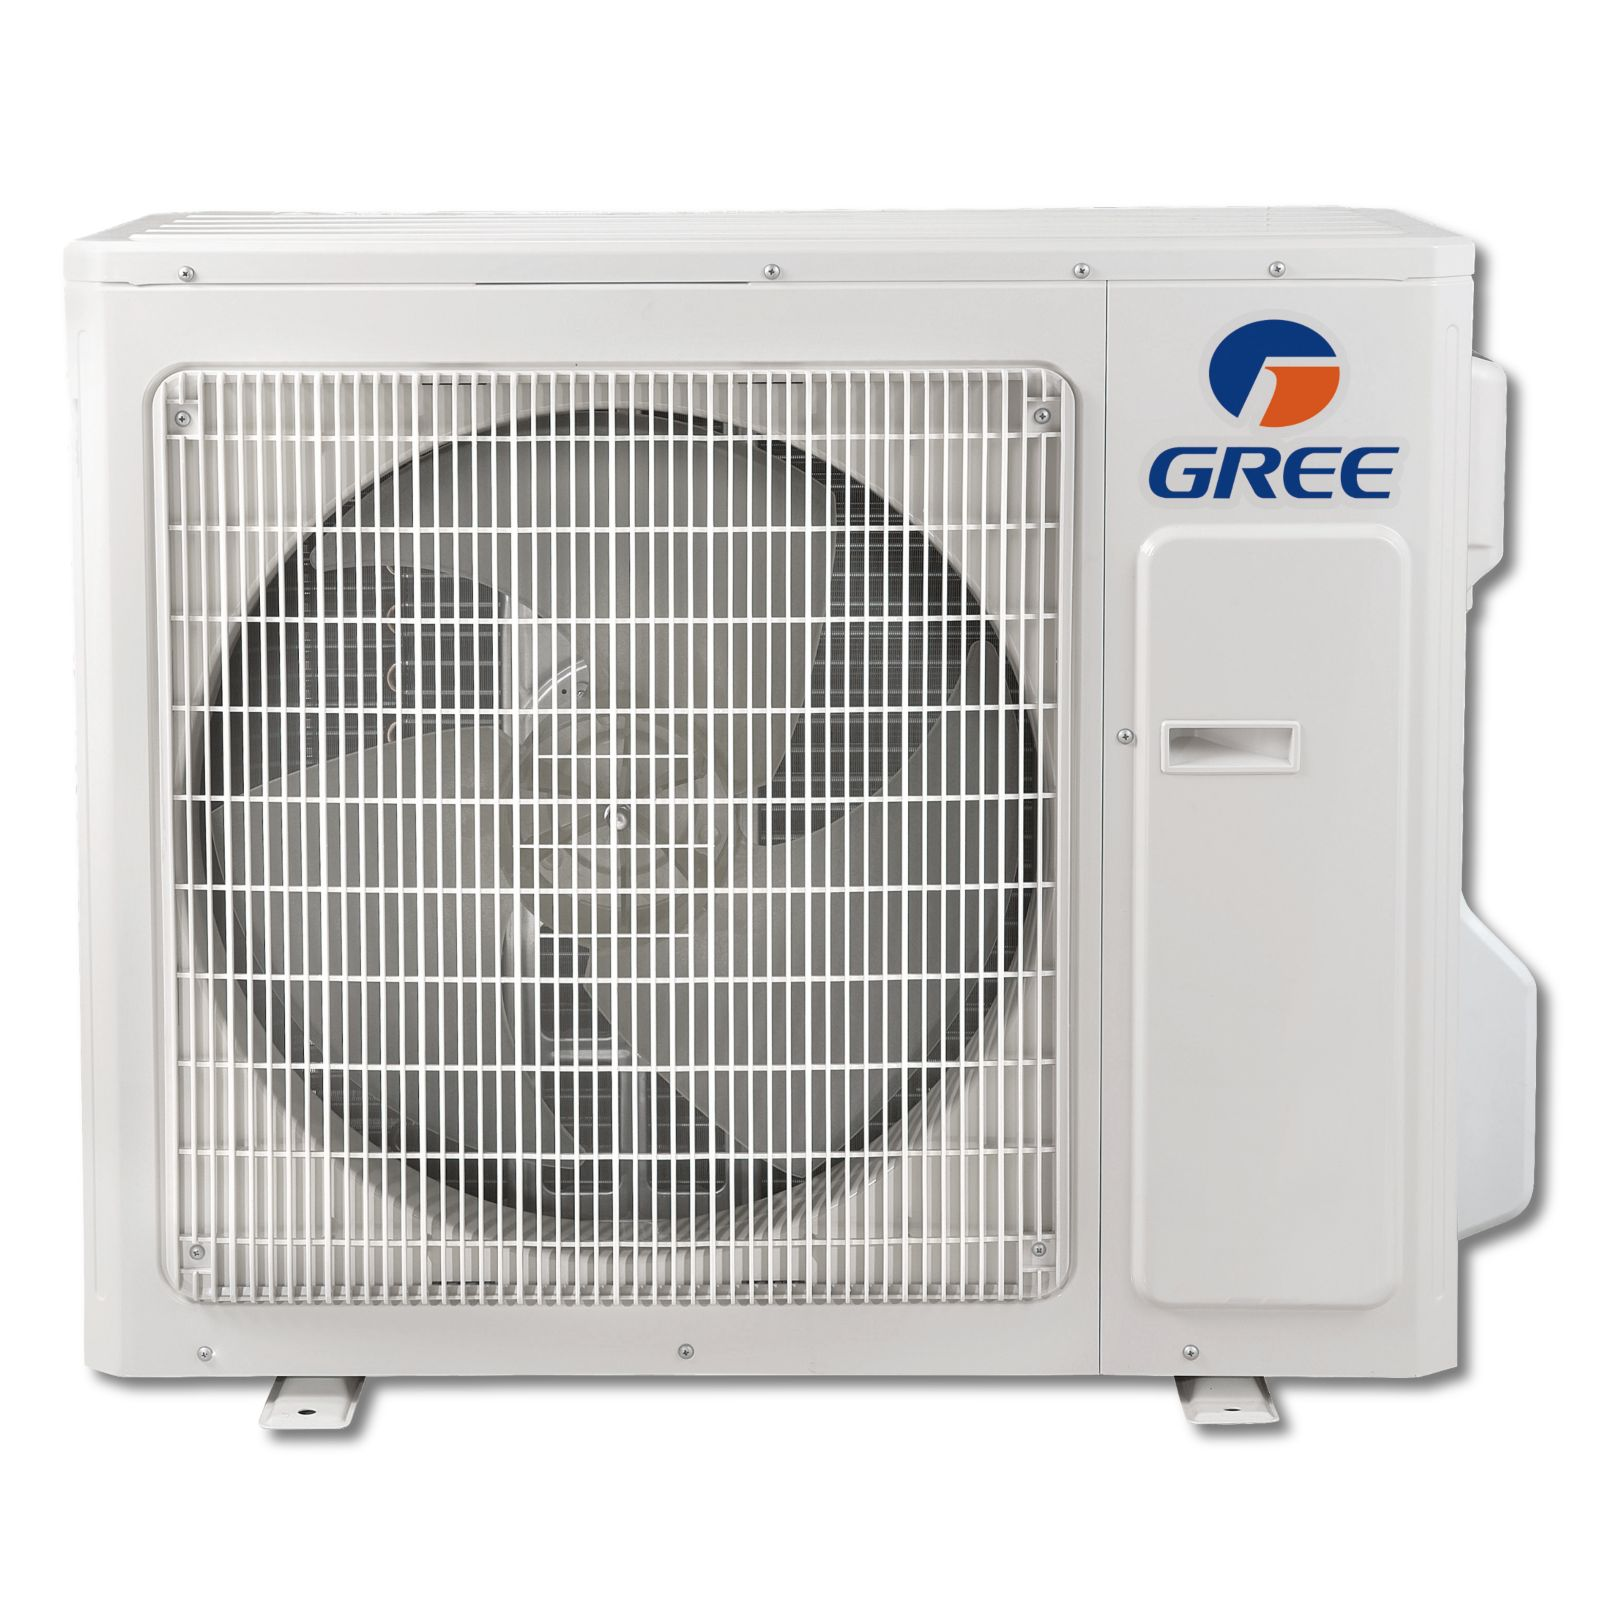 GREE VIR24HP230V1AO - Vireo 24,000 BTU Wall Mounted Inverter Heat Pump Outdoor Unit